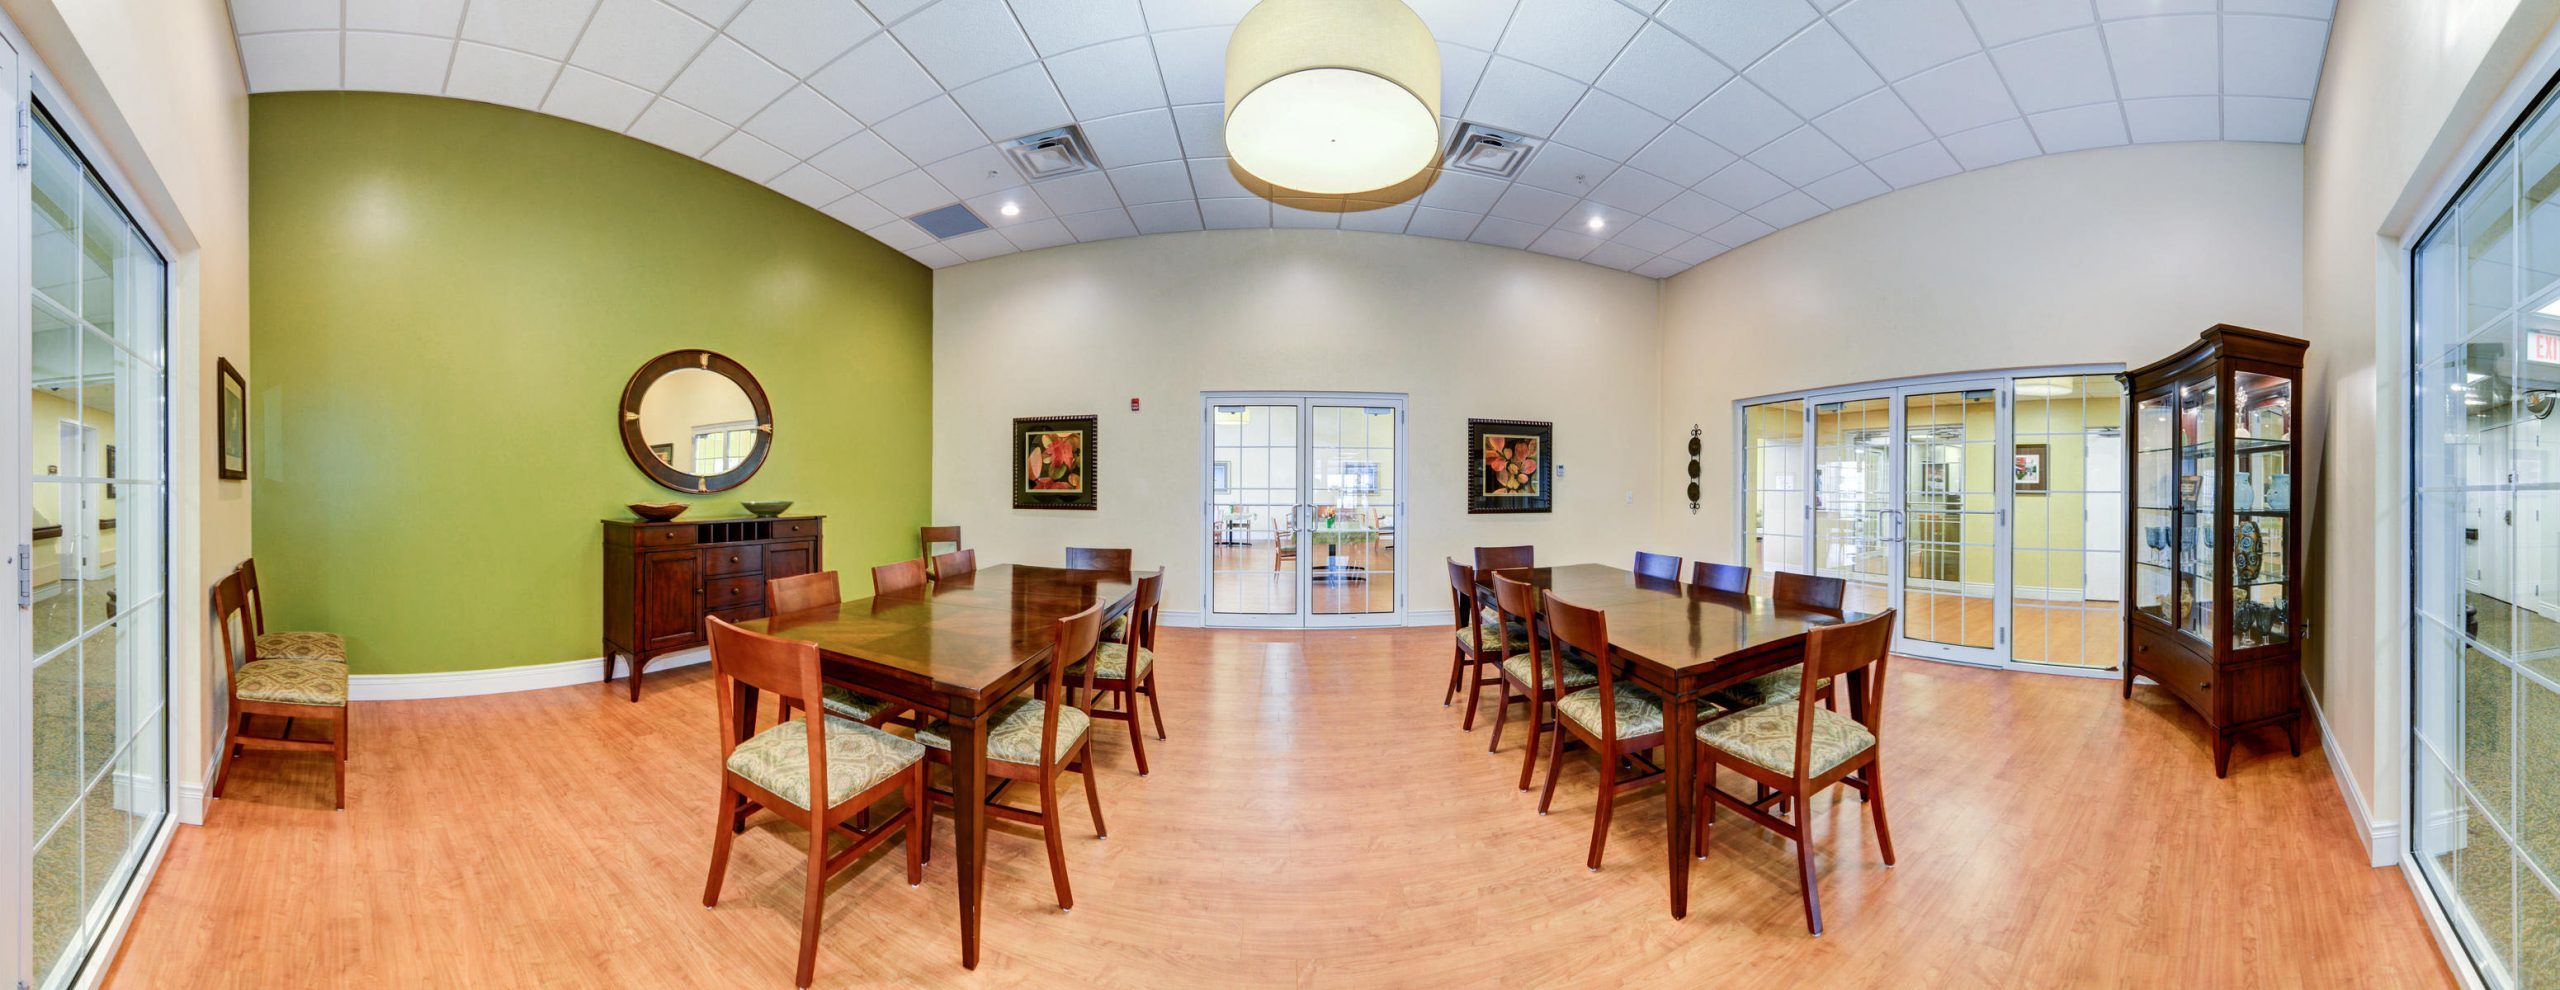 Panoramic view of Stonerise Morgantown gathering room with two large tables and seating